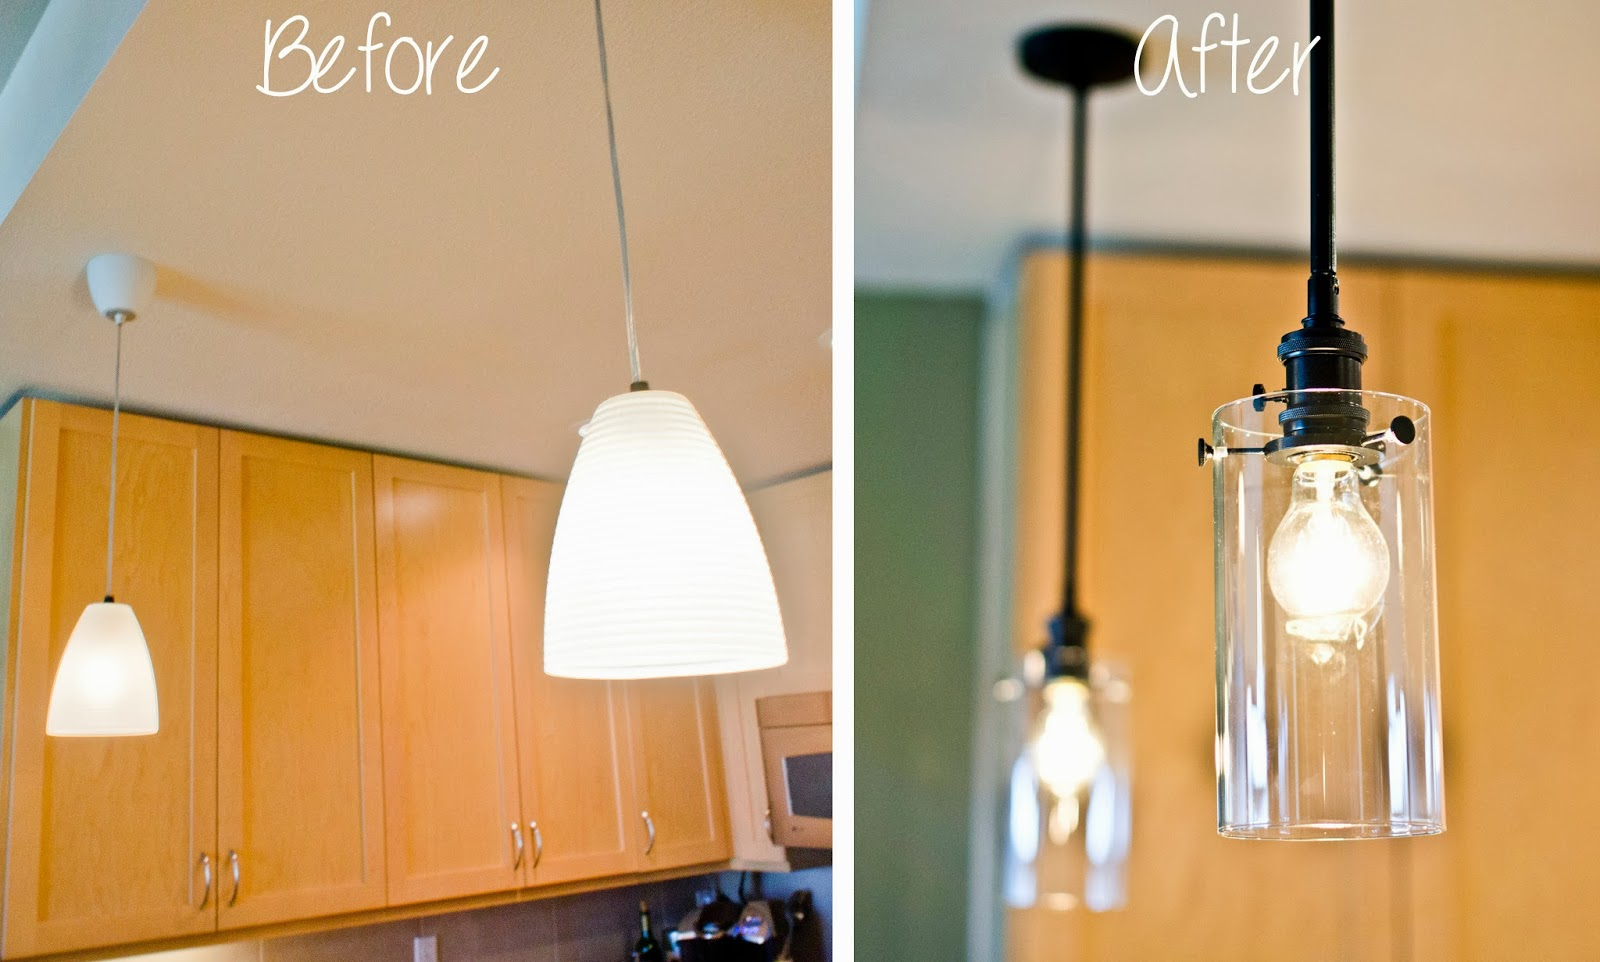 upgrading our kitchen pendant lights kitchen pendant light fixtures We were on a budget of for each light While searching the web for ideas I came across this photo from Gunkelmans Interior Design via Houzz and